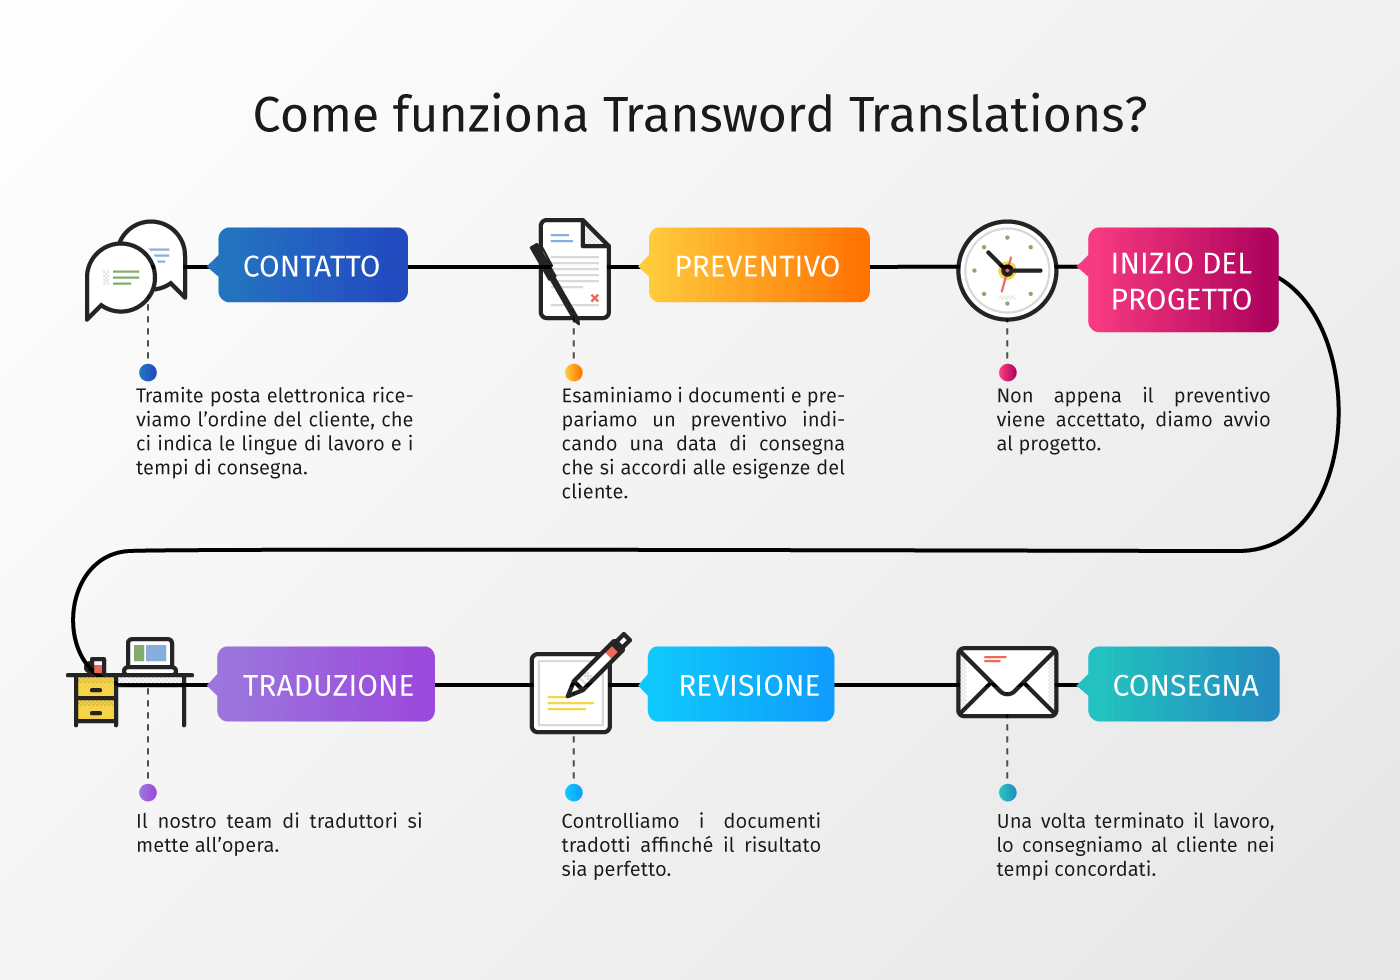 Come funziona Transword Translations?